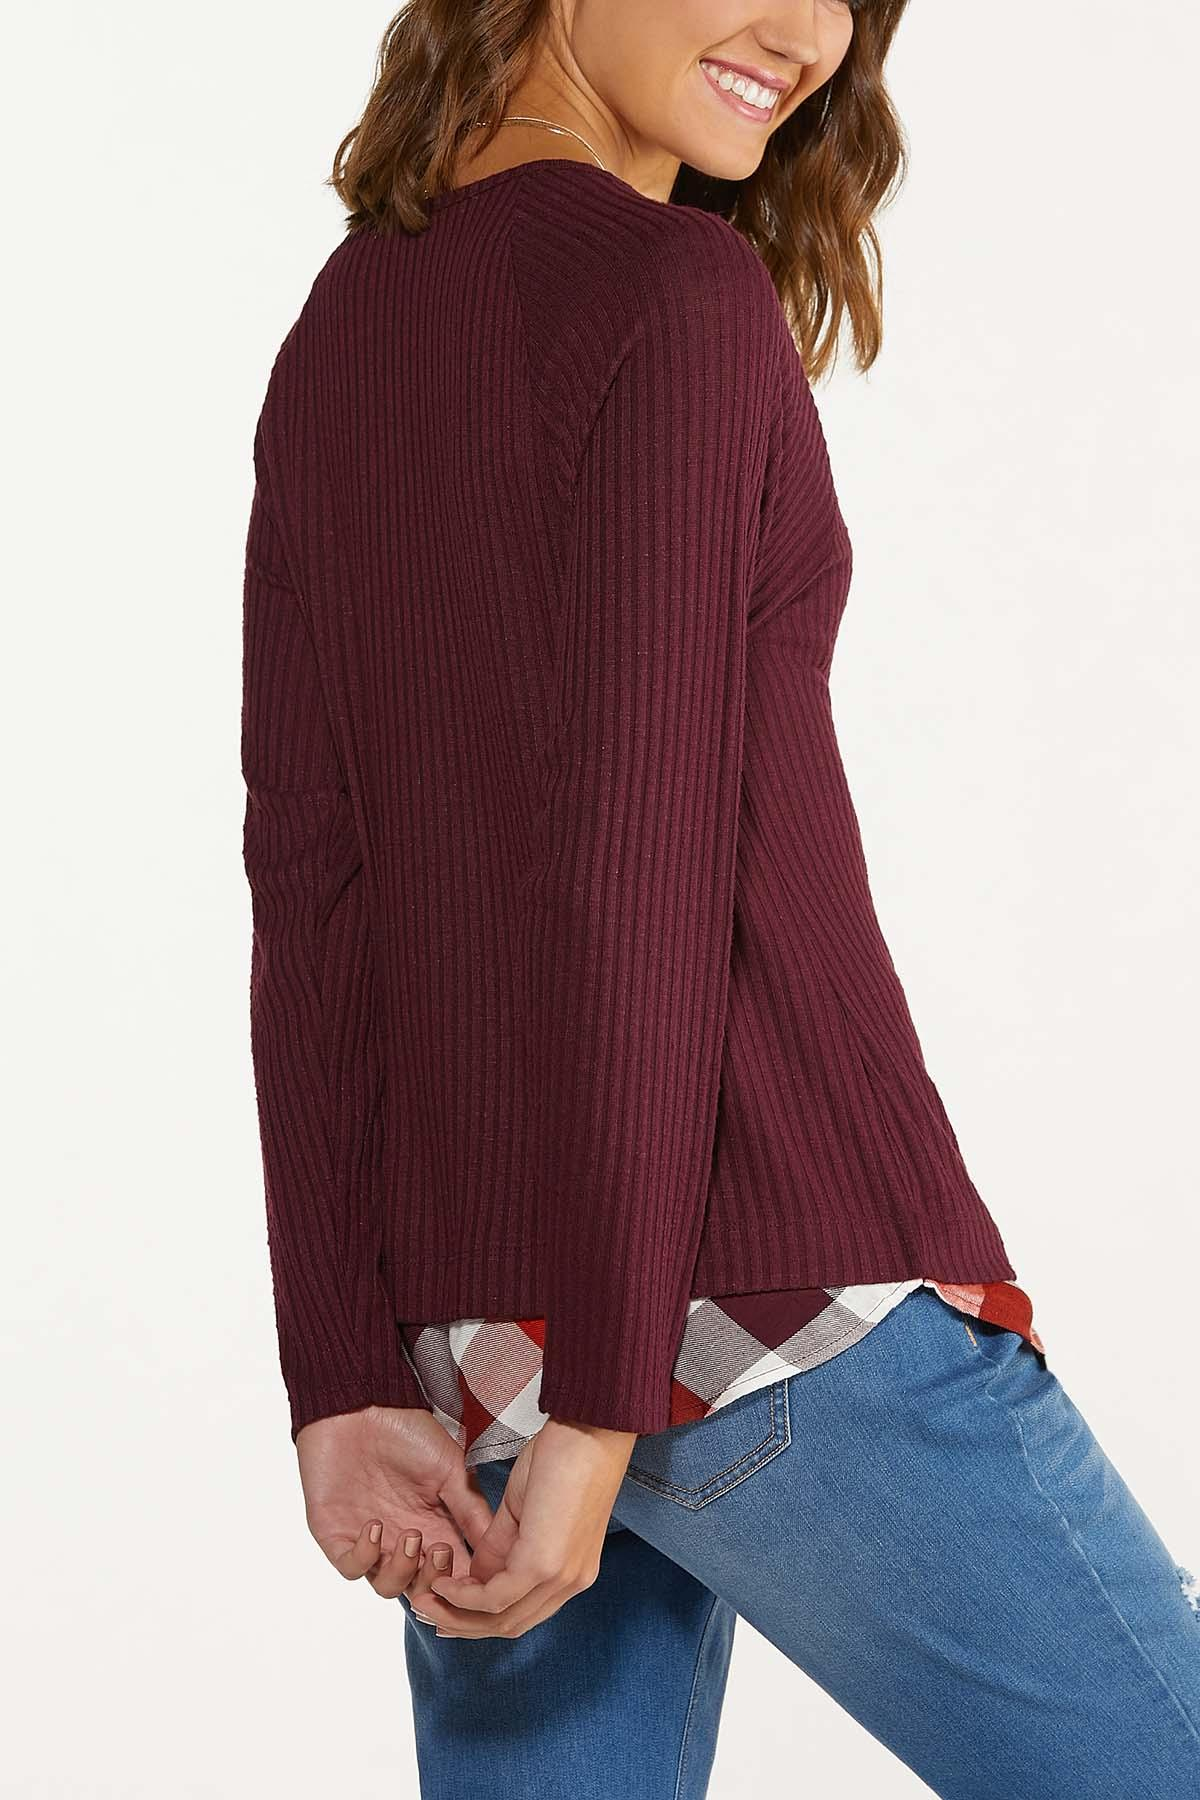 Fall Is In The Air Top (Item #44688056)